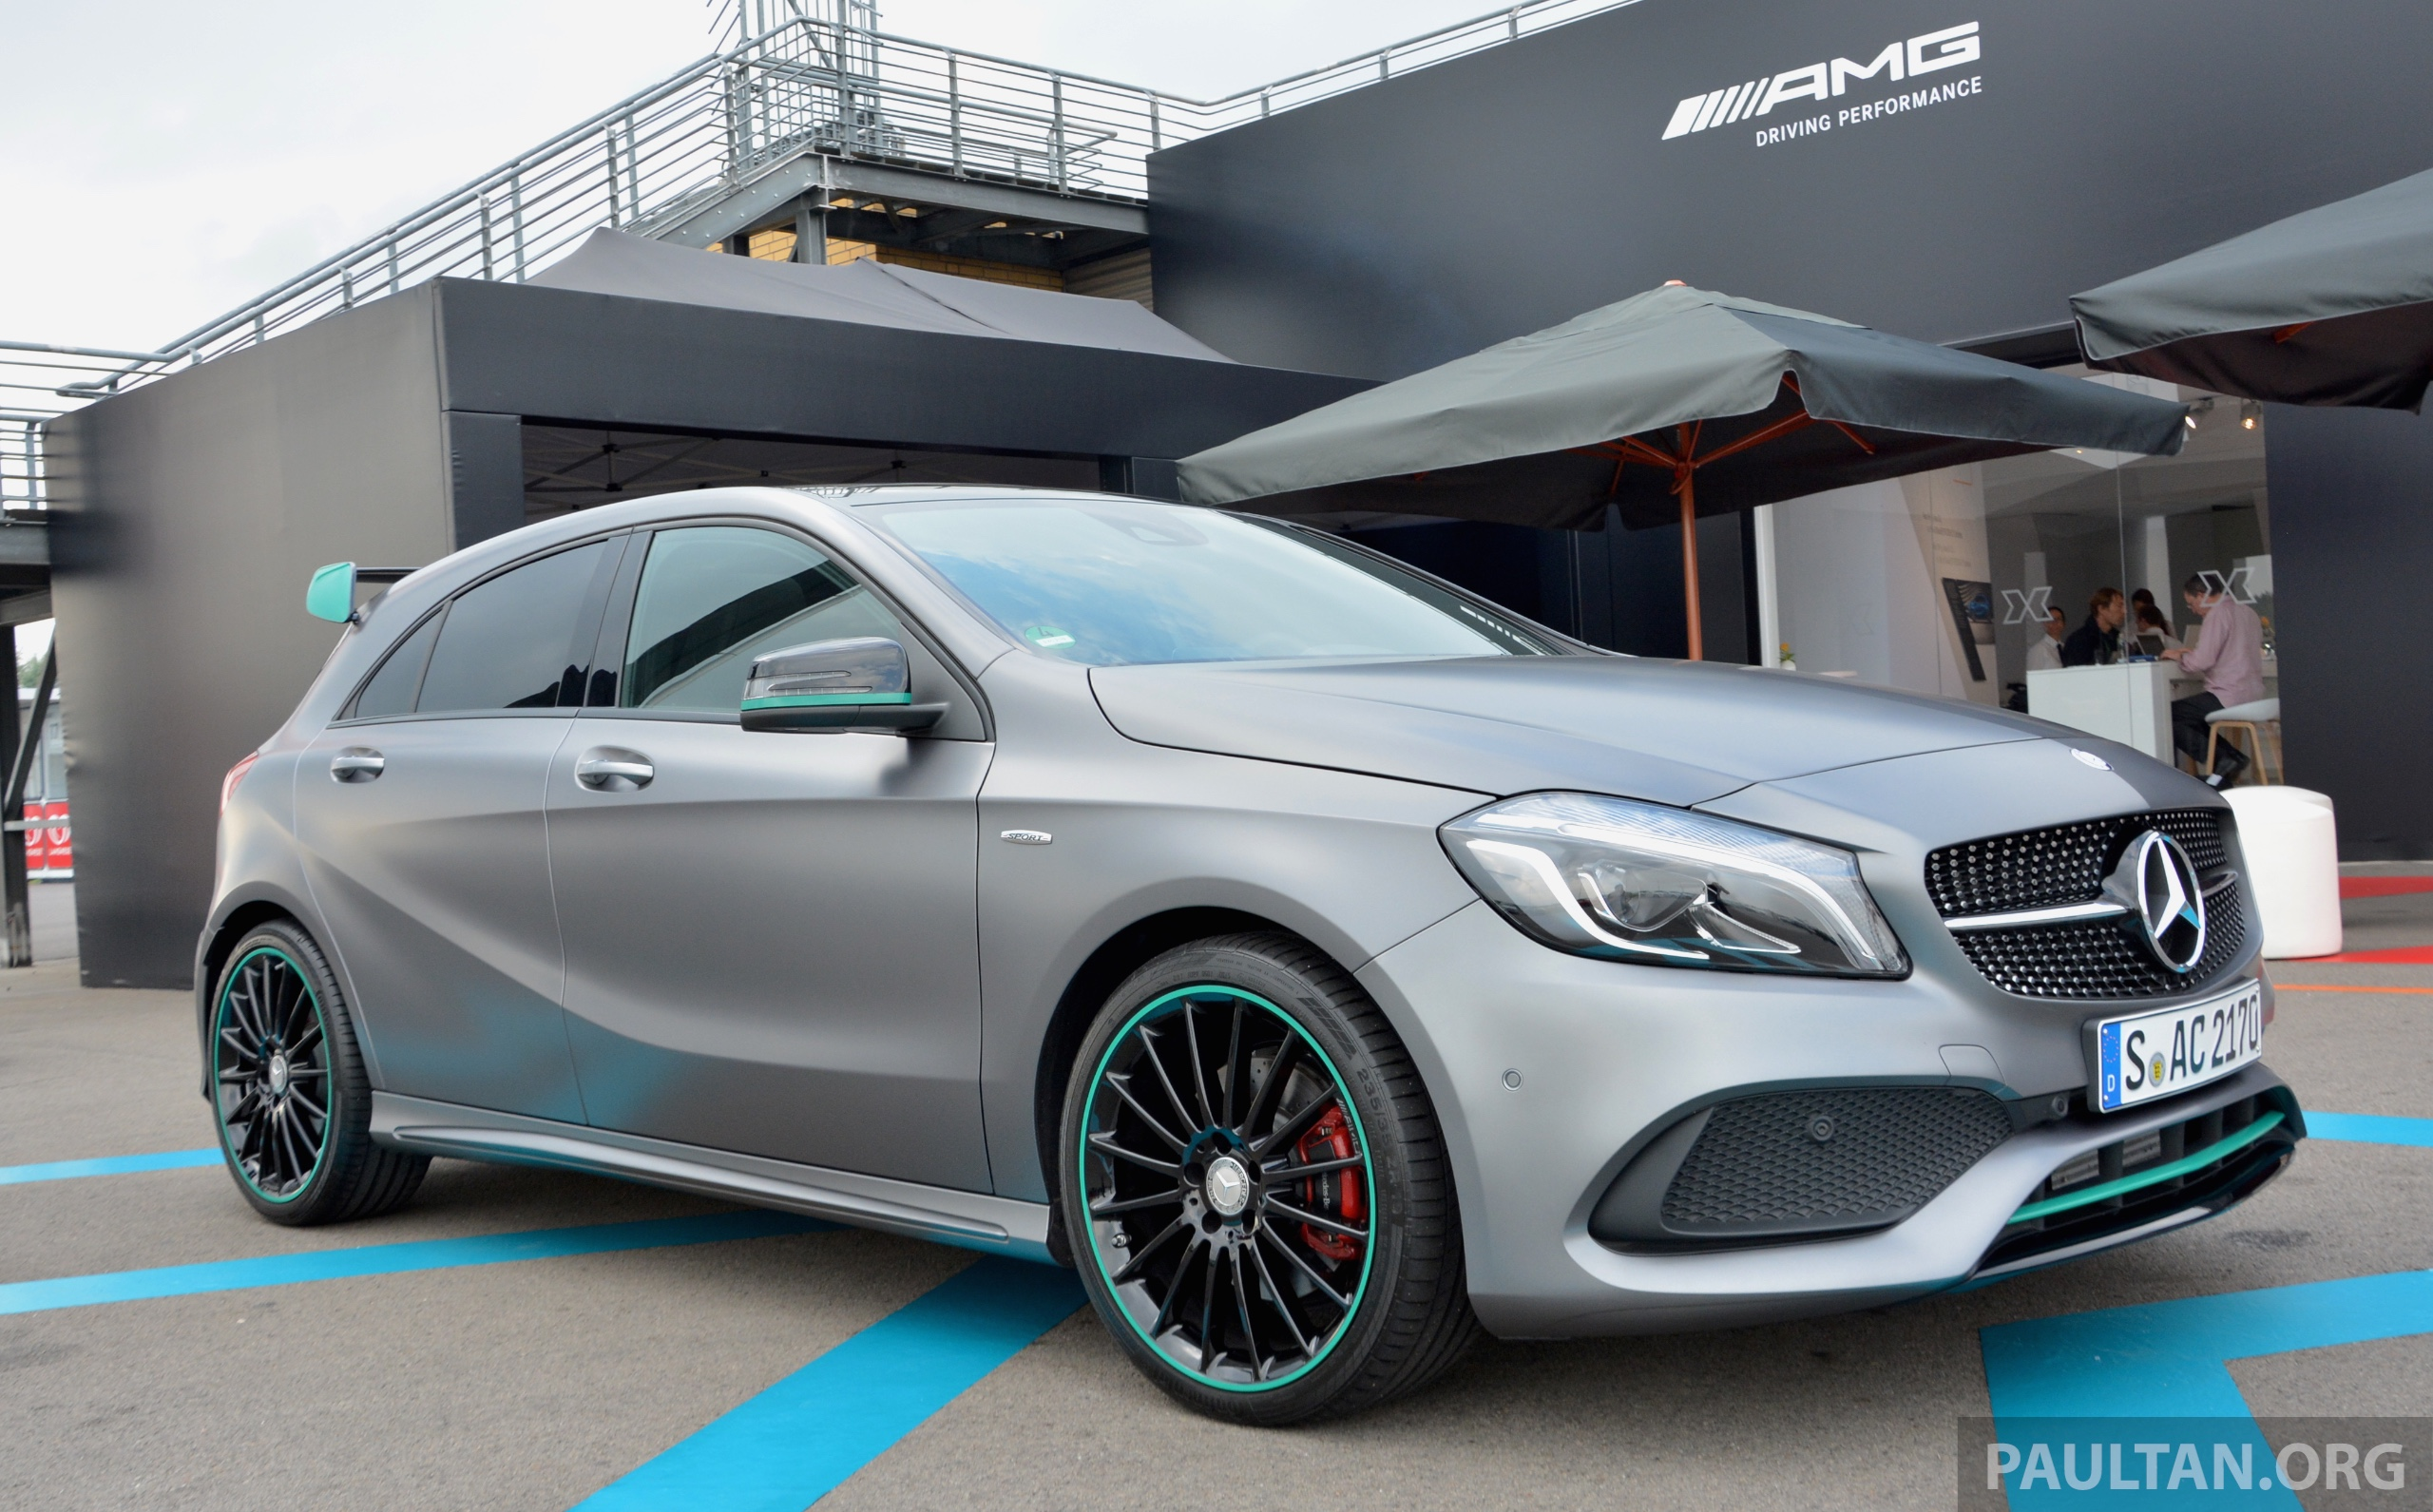 GALLERY: Mercedes-Benz A-Class Motorsport Edition Image 378892